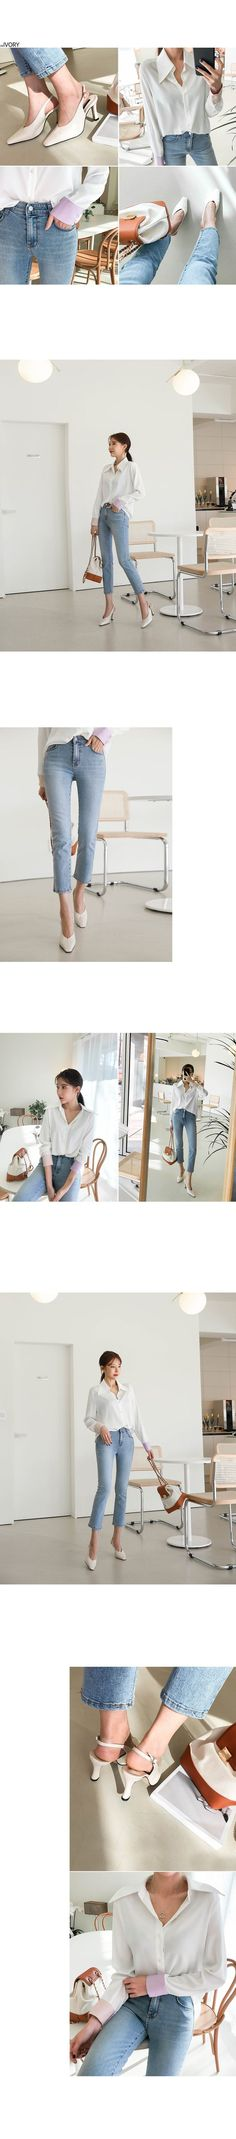 Contrast Cuff Button-Up Shirt - 1 like blouse summer blouse style blouse ideas Korean Blouse, Frill Blouse, Korean Fashion Online, Blouse Models, Blouse Styles, Green Colors, Button Up Shirts, Contrast, Buttons